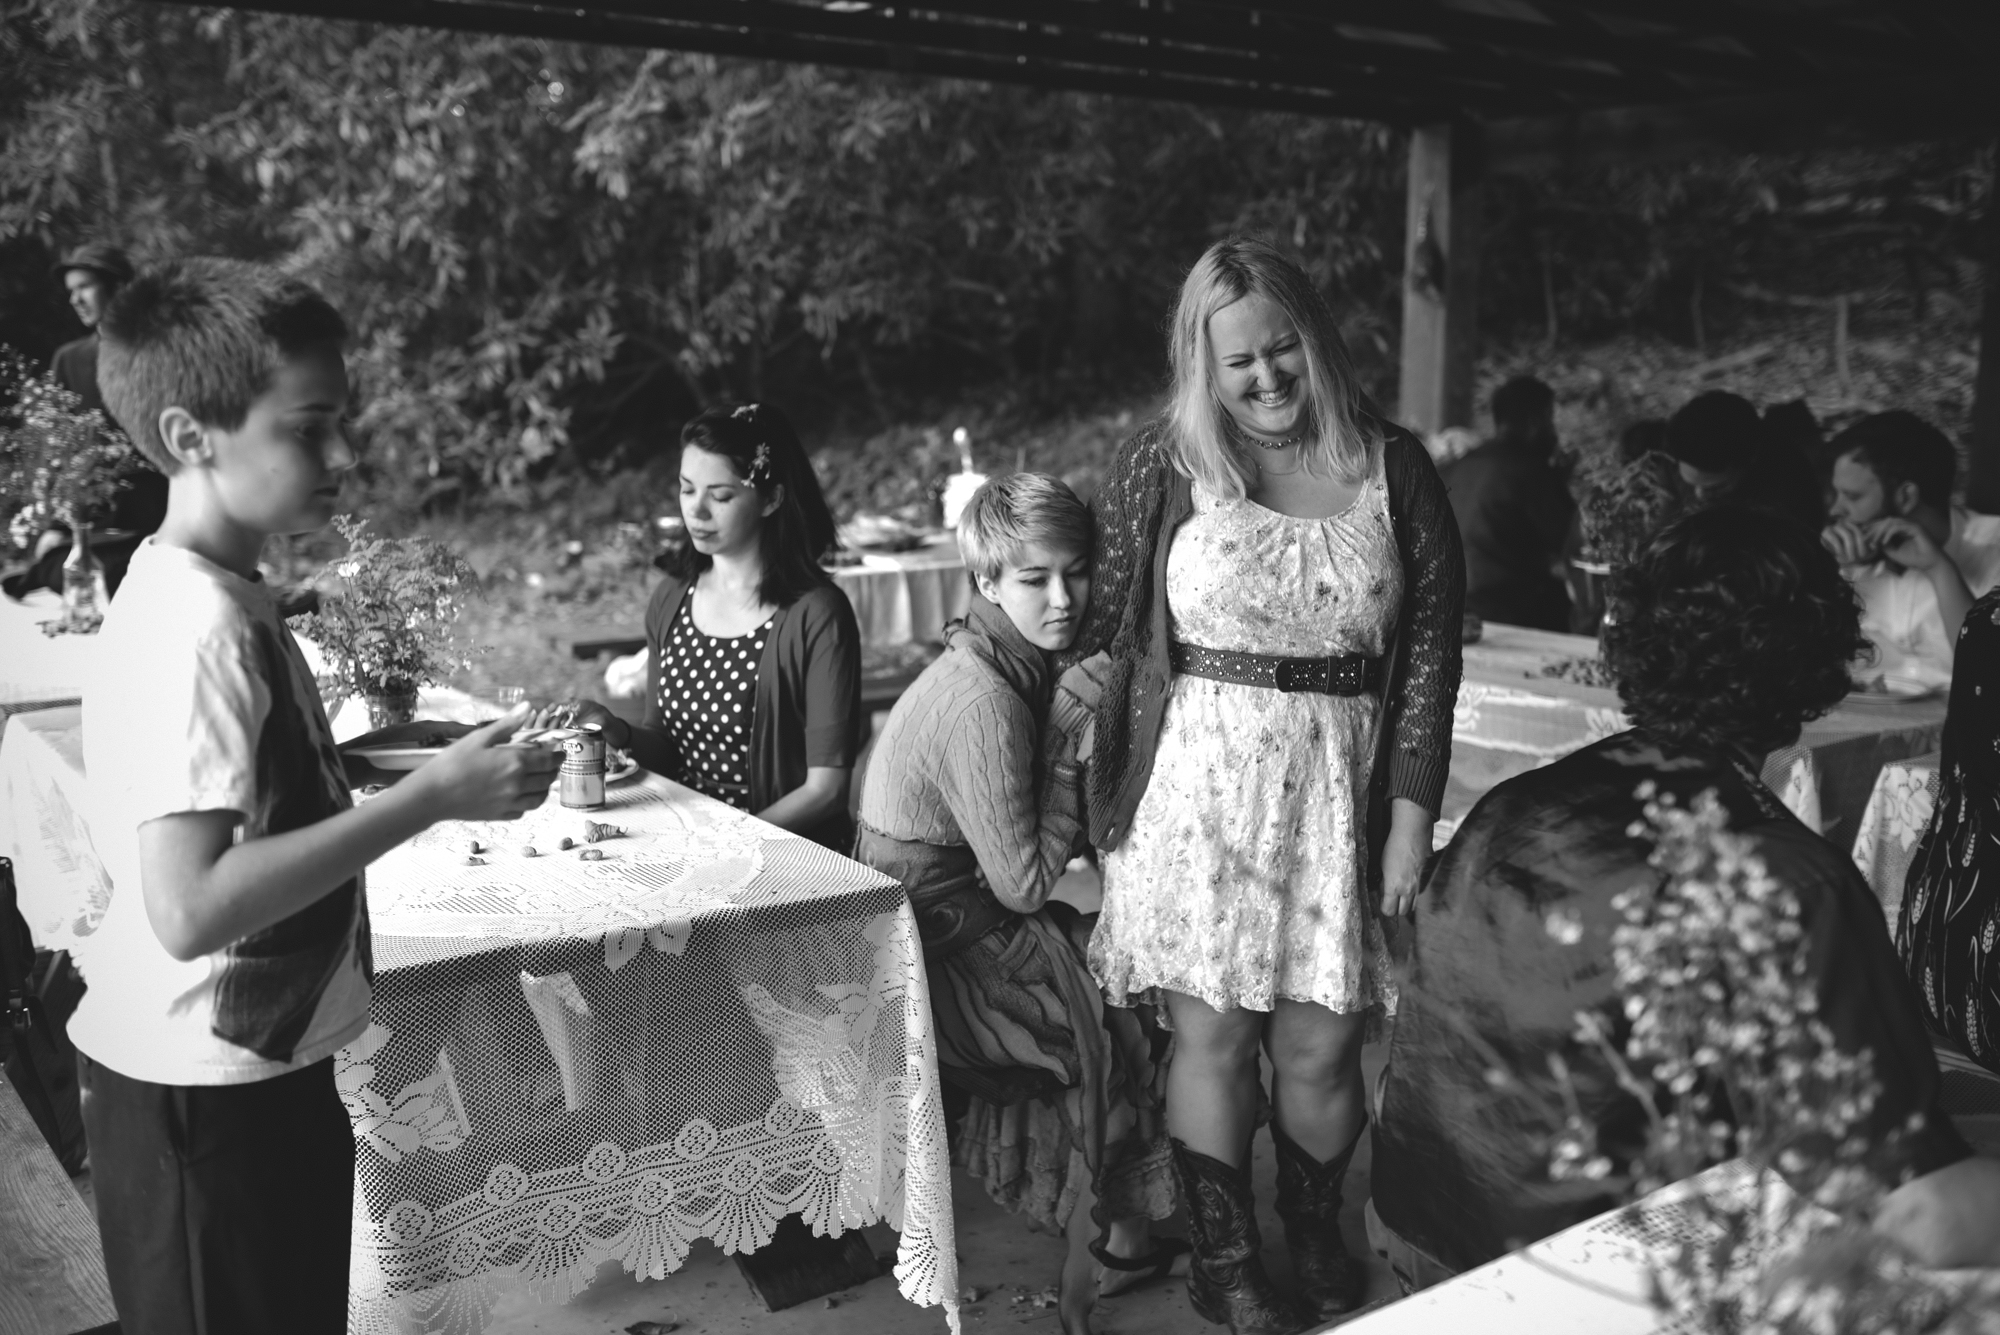 Mountain Wedding, Outdoors, Rustic, West Virginia, Maryland Wedding Photographer, DIY, Casual, wedding guests at reception, black and white photo